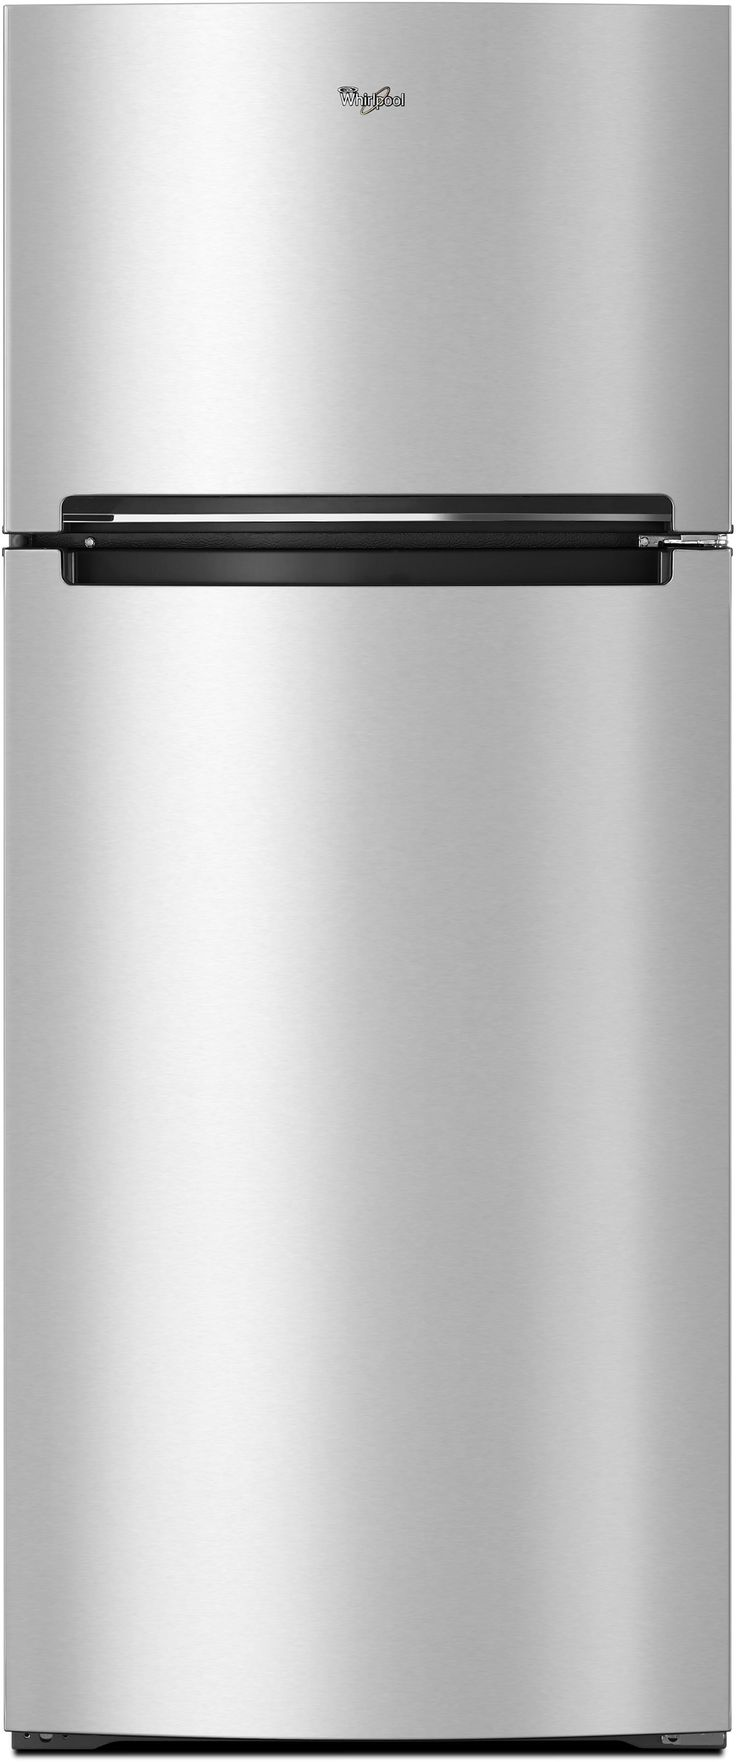 Whirlpool WRT518SZFM 28 Inch Top-Freezer Refrigerator with Pocket Handles, Flexi-Slide Bin, Gallon Door Storage, 17.6 cu. ft. Interior, Frameless Glass Shelving, 2 Humidity Controlled Crisper Drawers and Electronic Temperature Controls: Stainless Steel